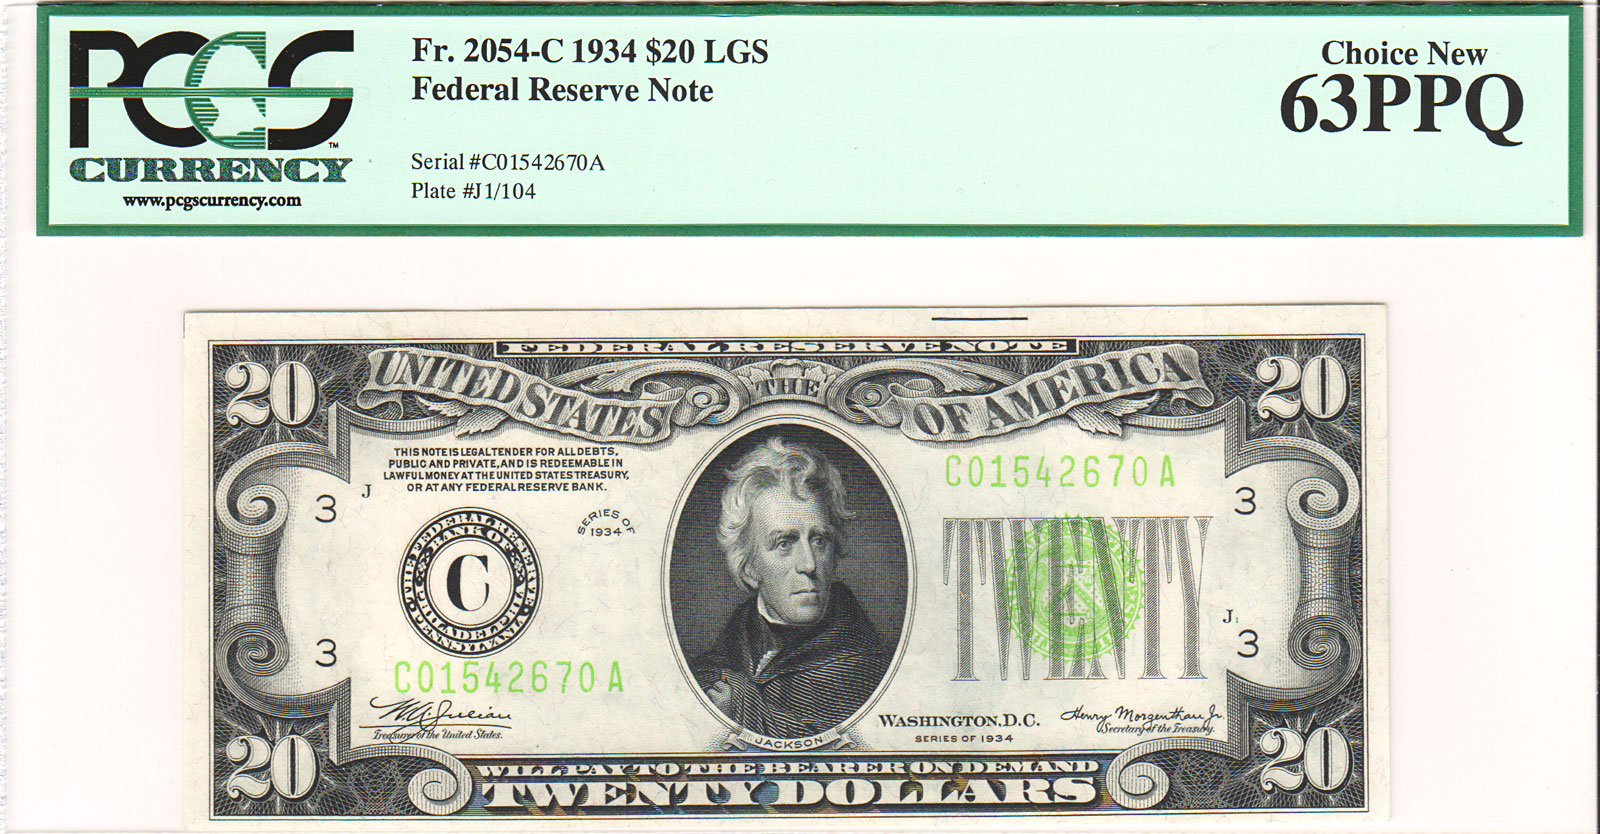 Early series 1934 20 federal reserve notes were printed with a dark